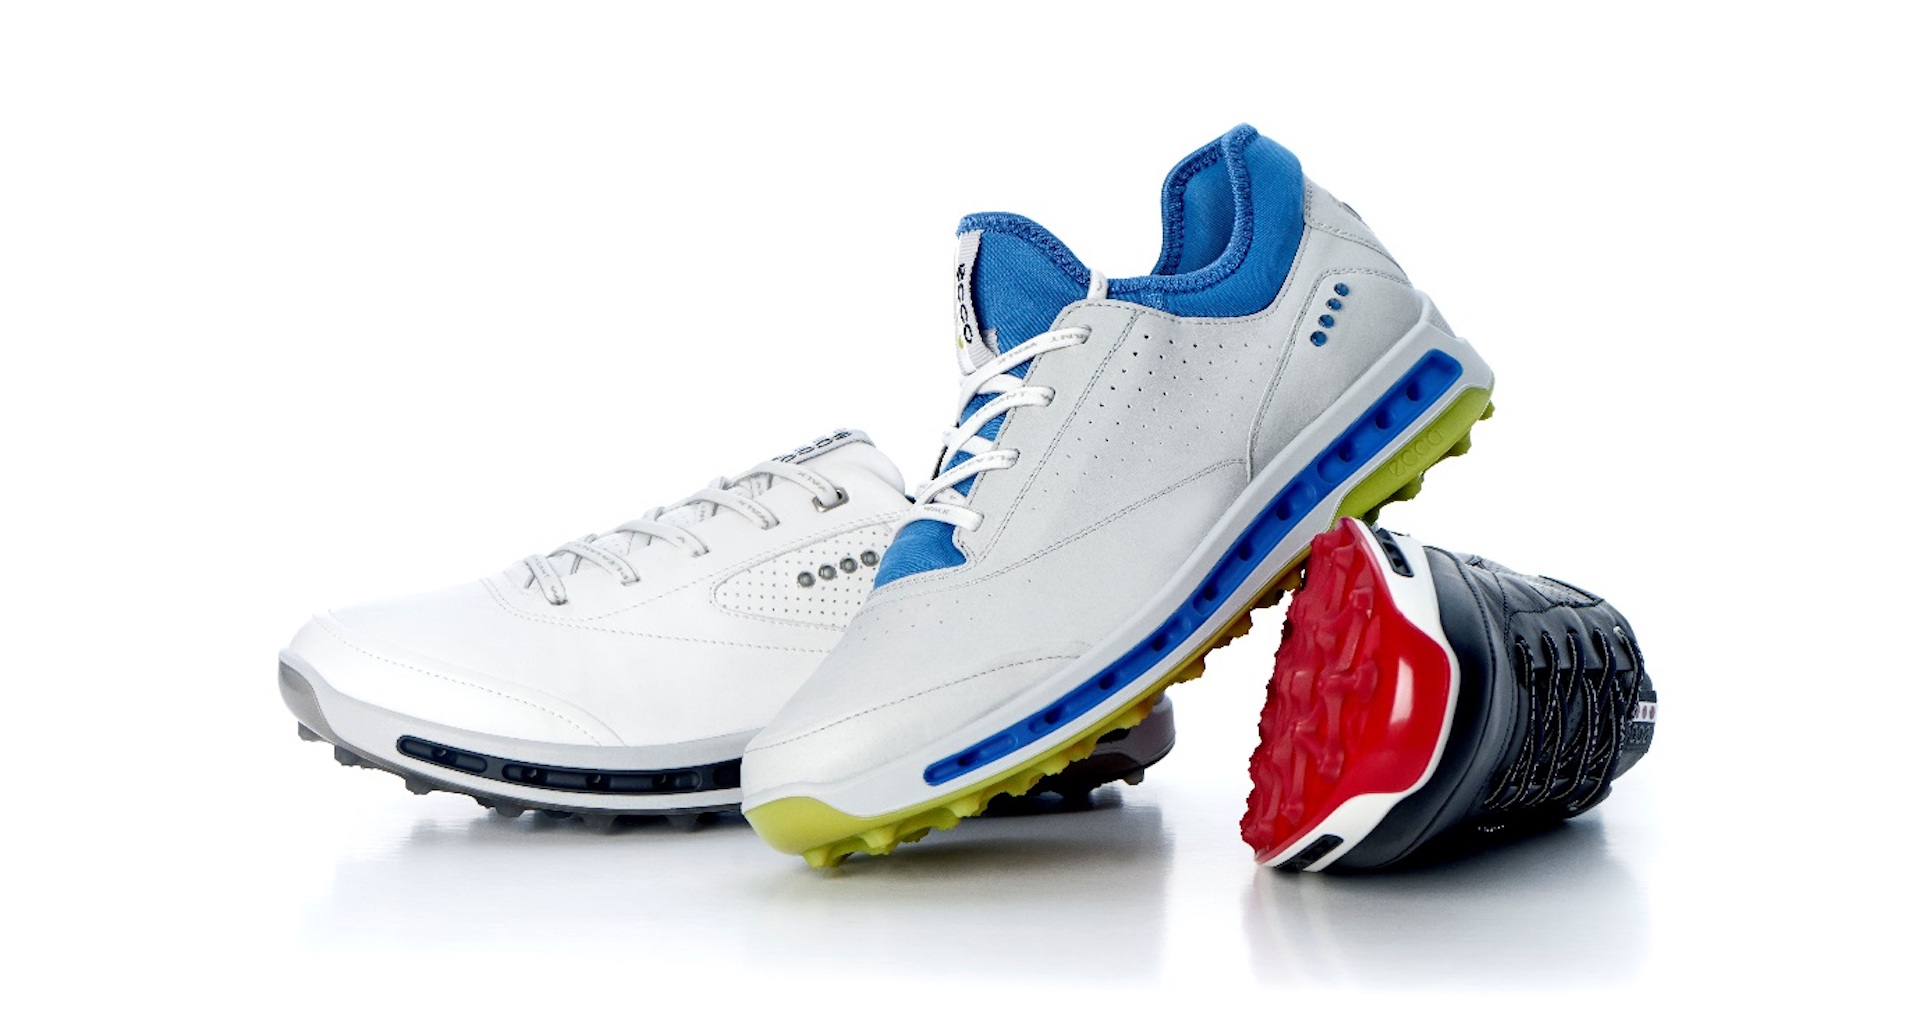 Duca del Cosma rock the golf shoe world